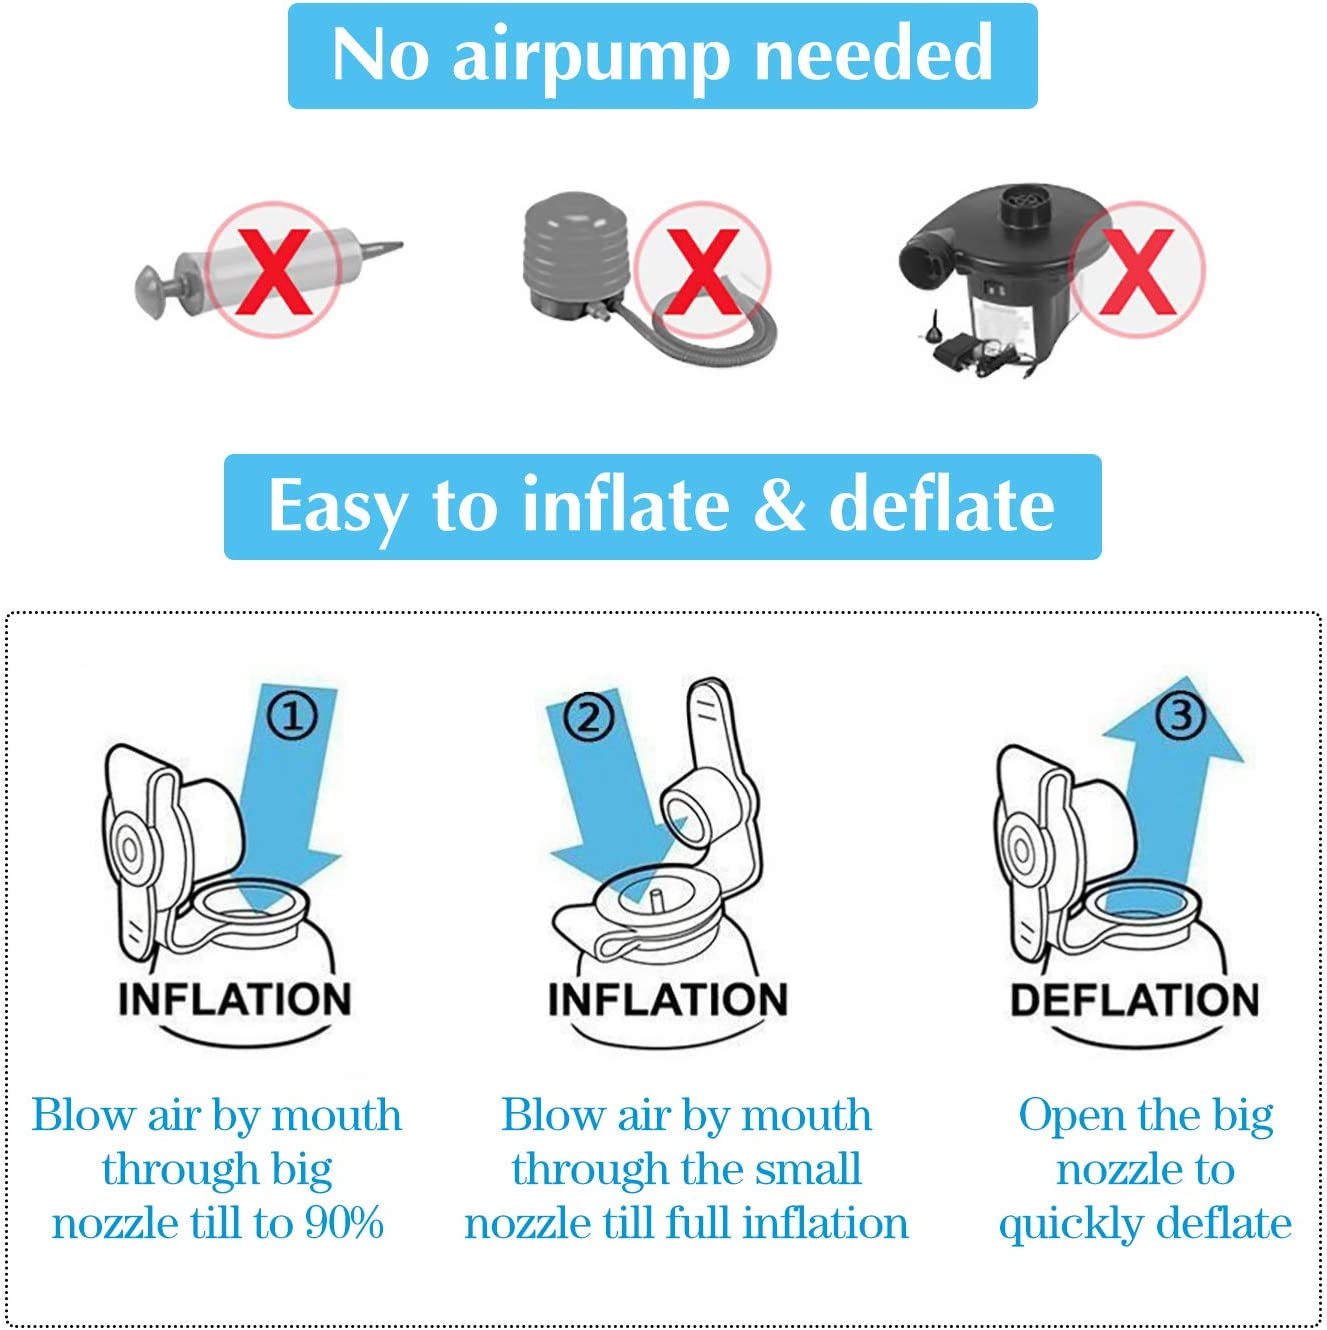 Inflatable Travel Foot Rest for Air Train Car Footrest Pillow Kids Toddlers Airplane Flat Bed Muti-Functional Adjustable Height Office Home Leg Rest Pillow Lightweight Compact Carry Grey